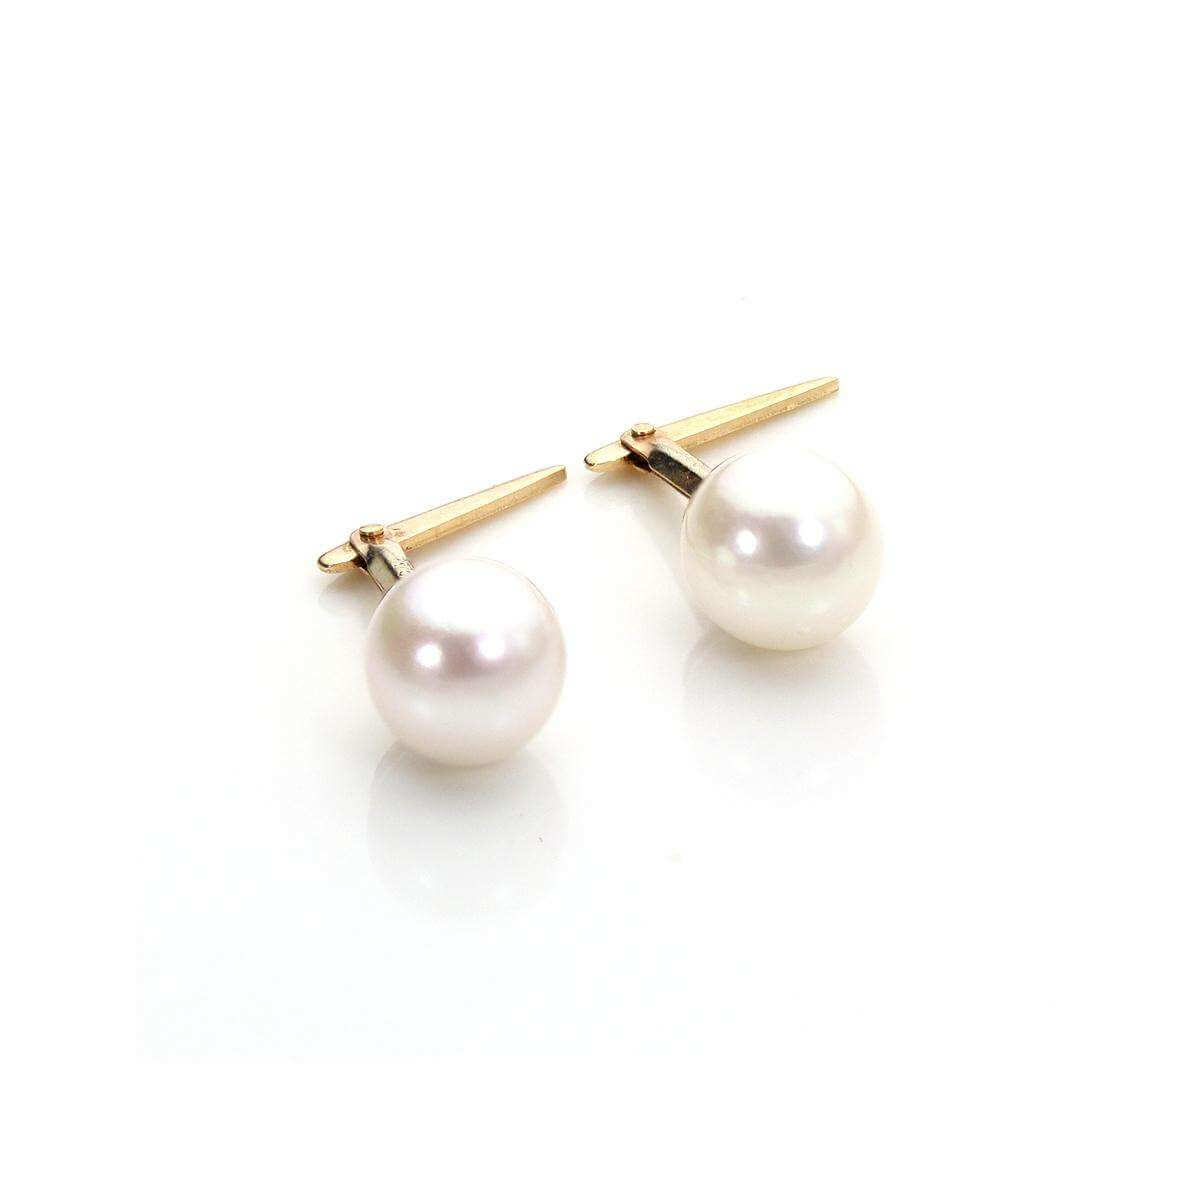 Andralok 9ct Yellow Gold Cultured Pearl 5mm Stud Earrings